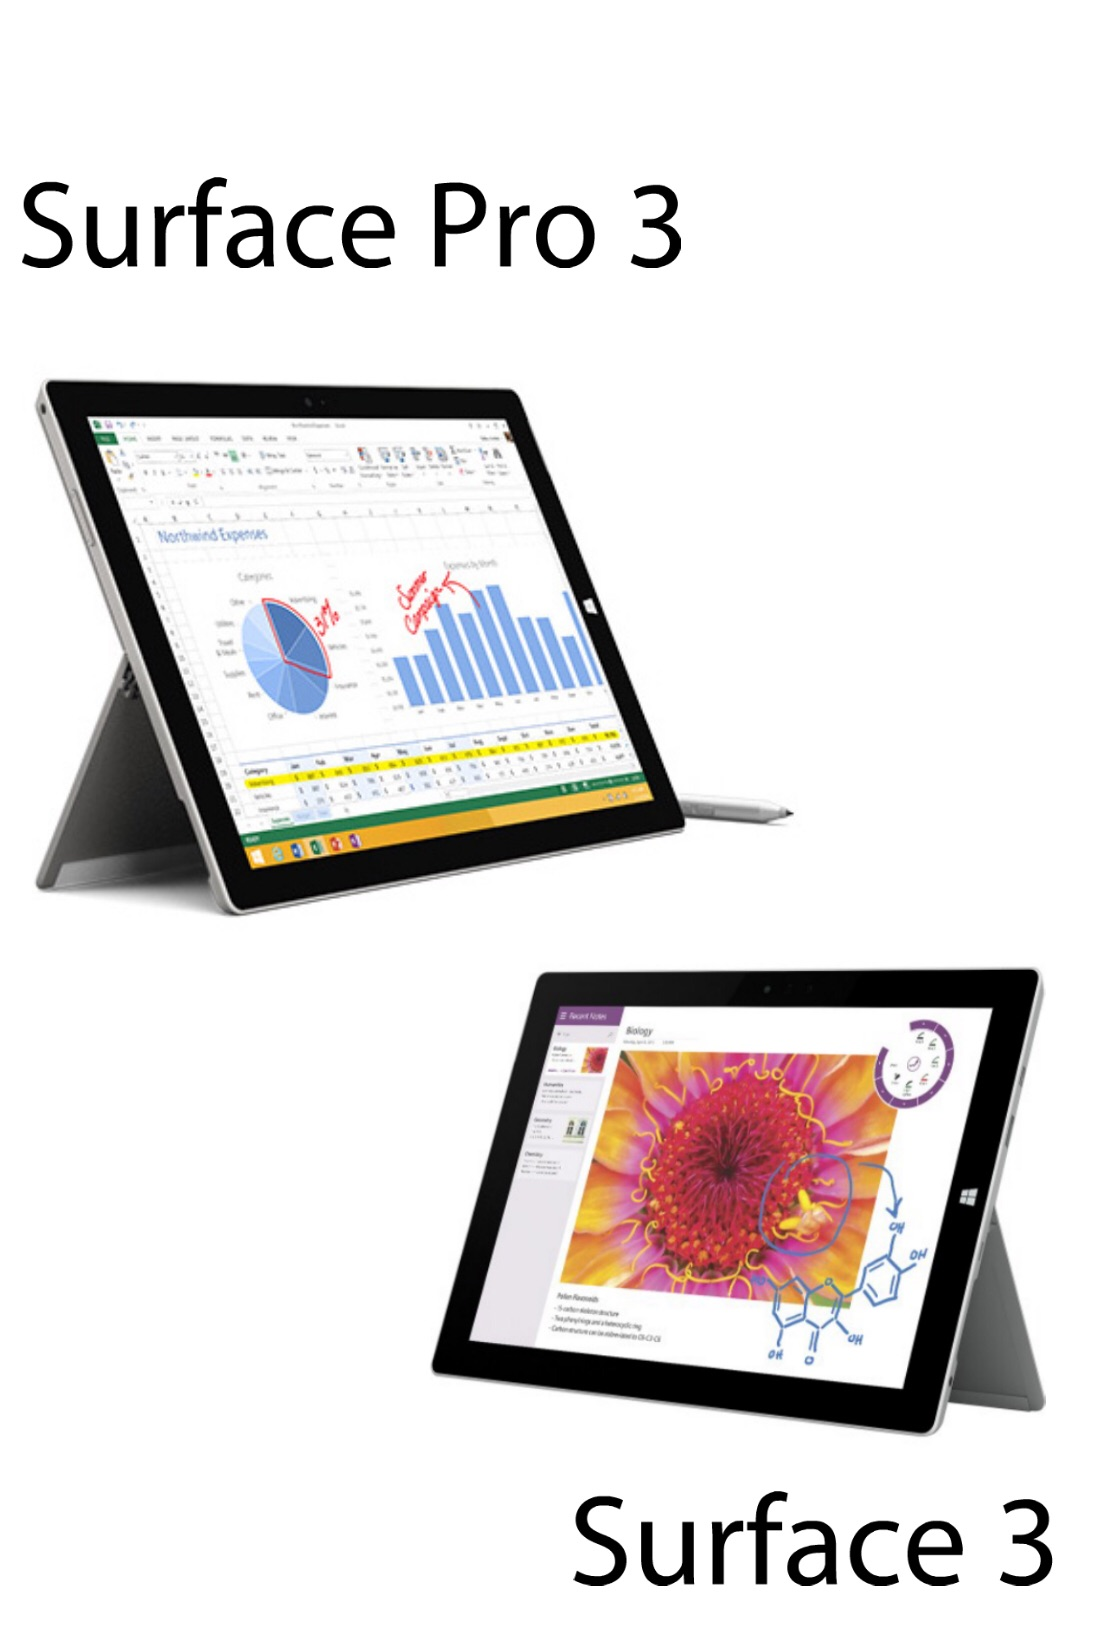 microsoft surface pro 3 vs microsoft surface 3. Black Bedroom Furniture Sets. Home Design Ideas